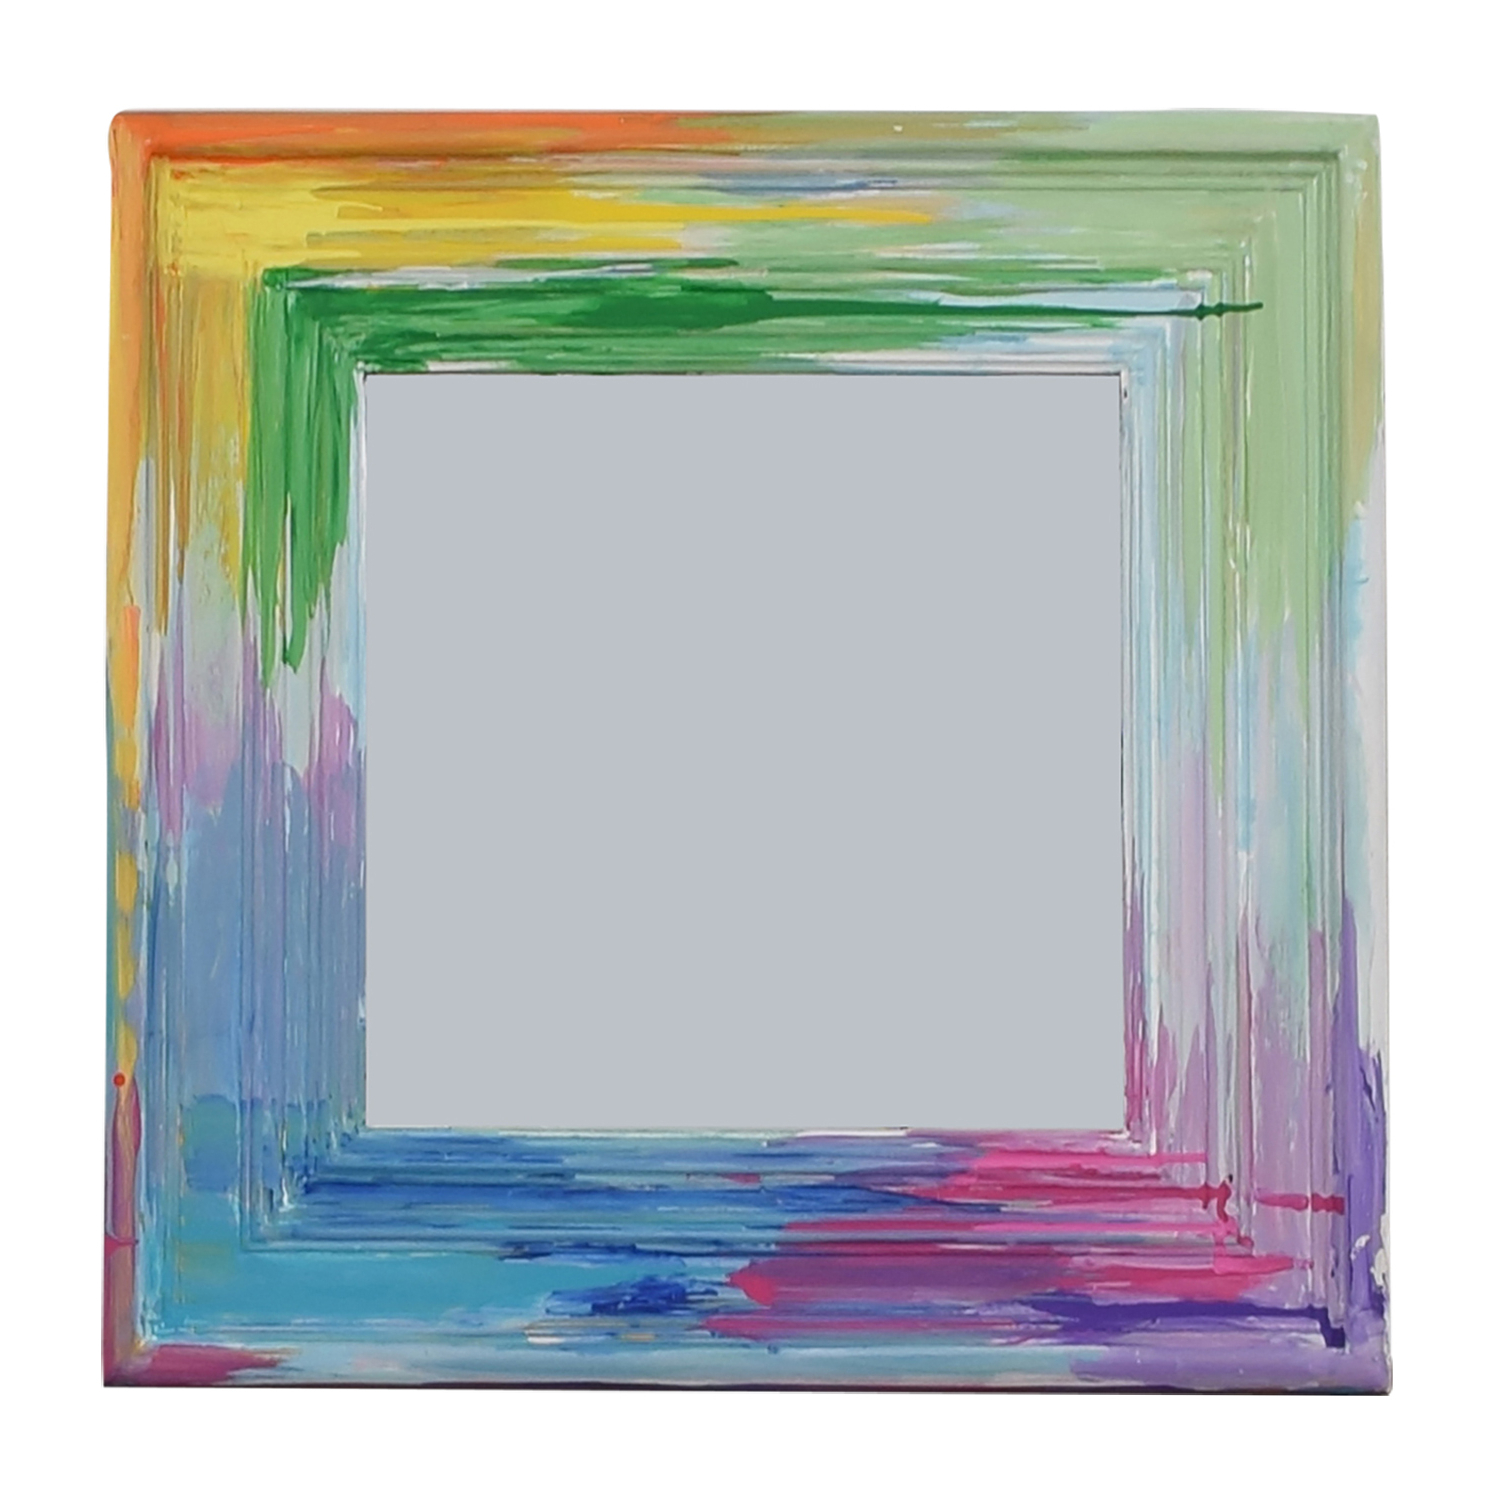 [%84% Off – Rainbow Painted Square Wall Mirror / Decor Intended For Popular Painted Wall Mirrors|Painted Wall Mirrors Inside 2019 84% Off – Rainbow Painted Square Wall Mirror / Decor|Preferred Painted Wall Mirrors Pertaining To 84% Off – Rainbow Painted Square Wall Mirror / Decor|Favorite 84% Off – Rainbow Painted Square Wall Mirror / Decor In Painted Wall Mirrors%] (View 1 of 20)